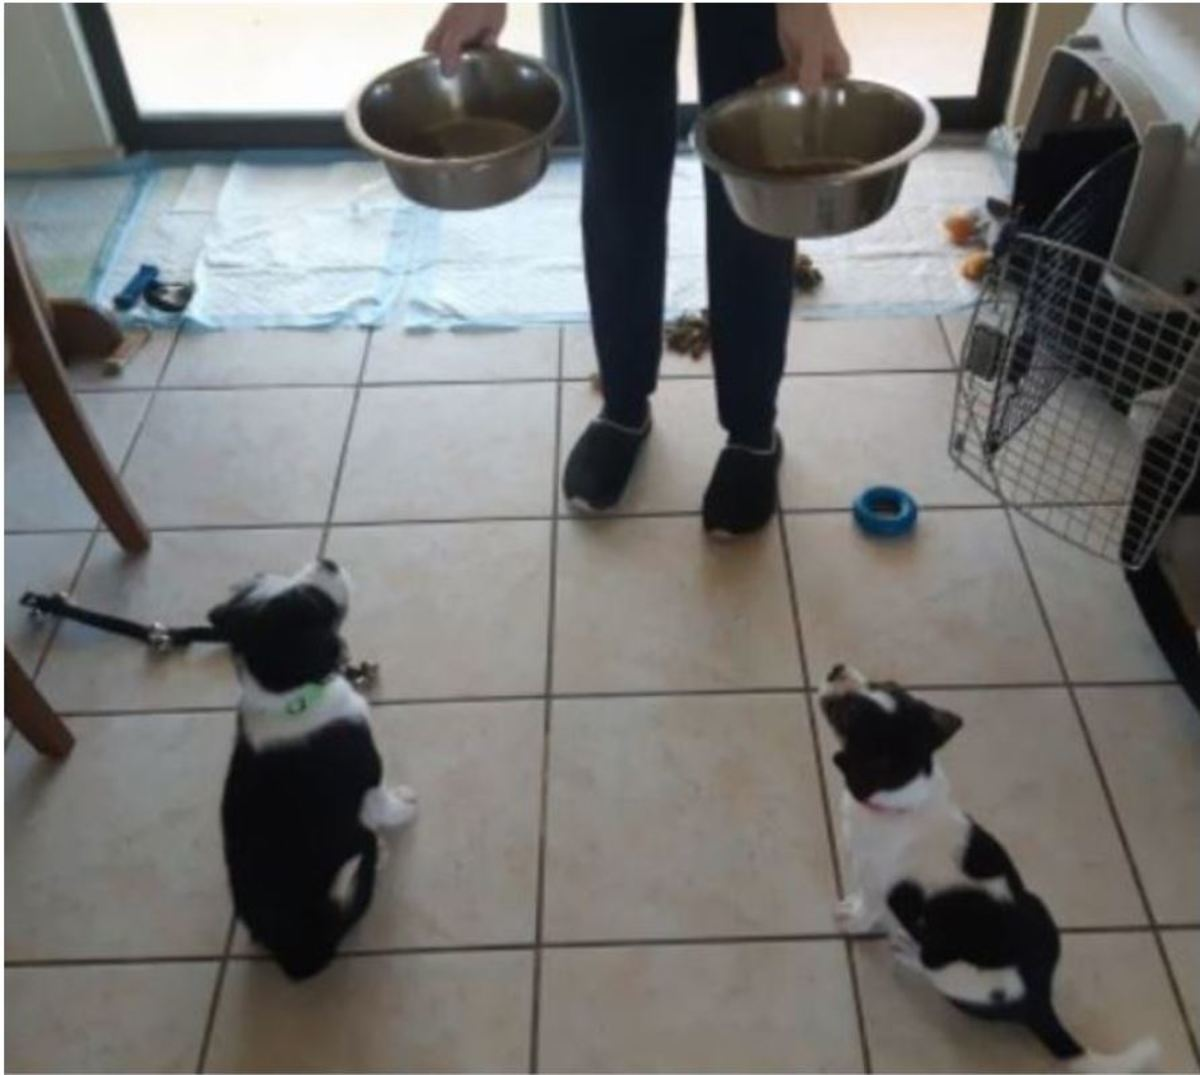 Two 8-week old puppies learning to sit before their bowls are placed on the floor.